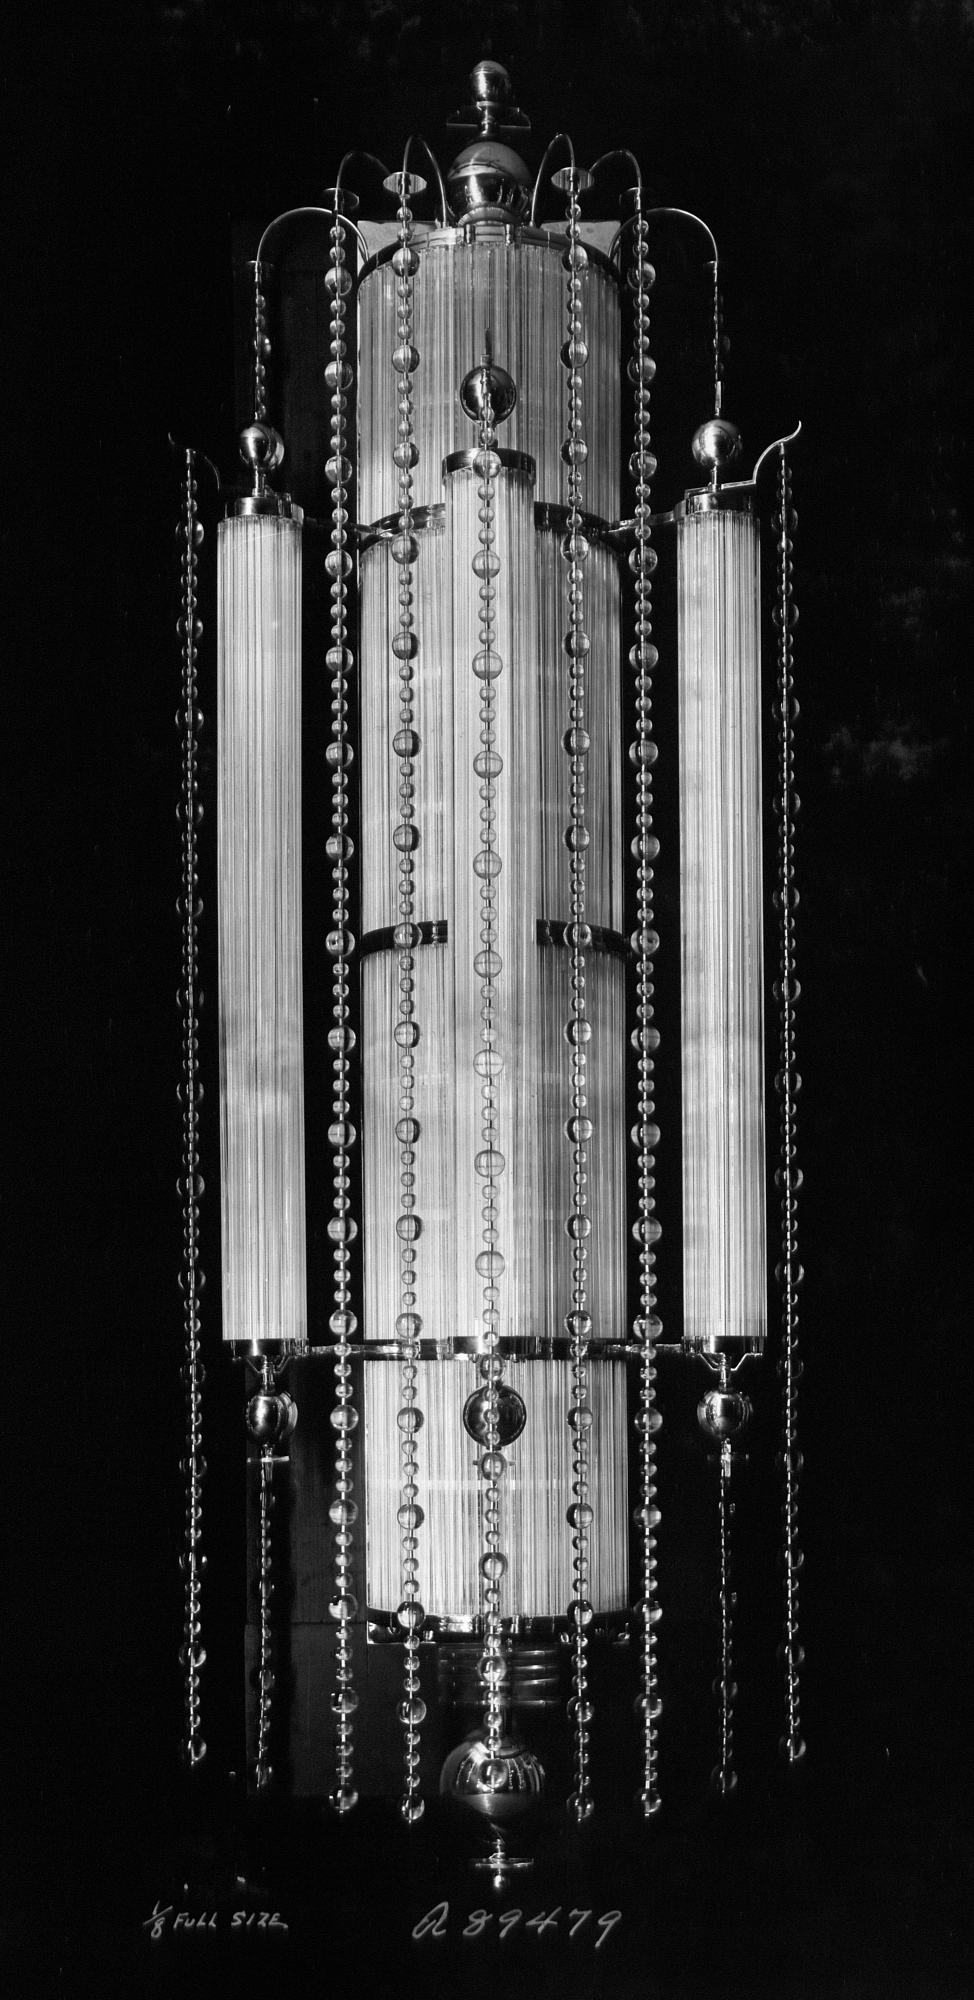 Black and white photograph of long Art Deco-style light fixture.